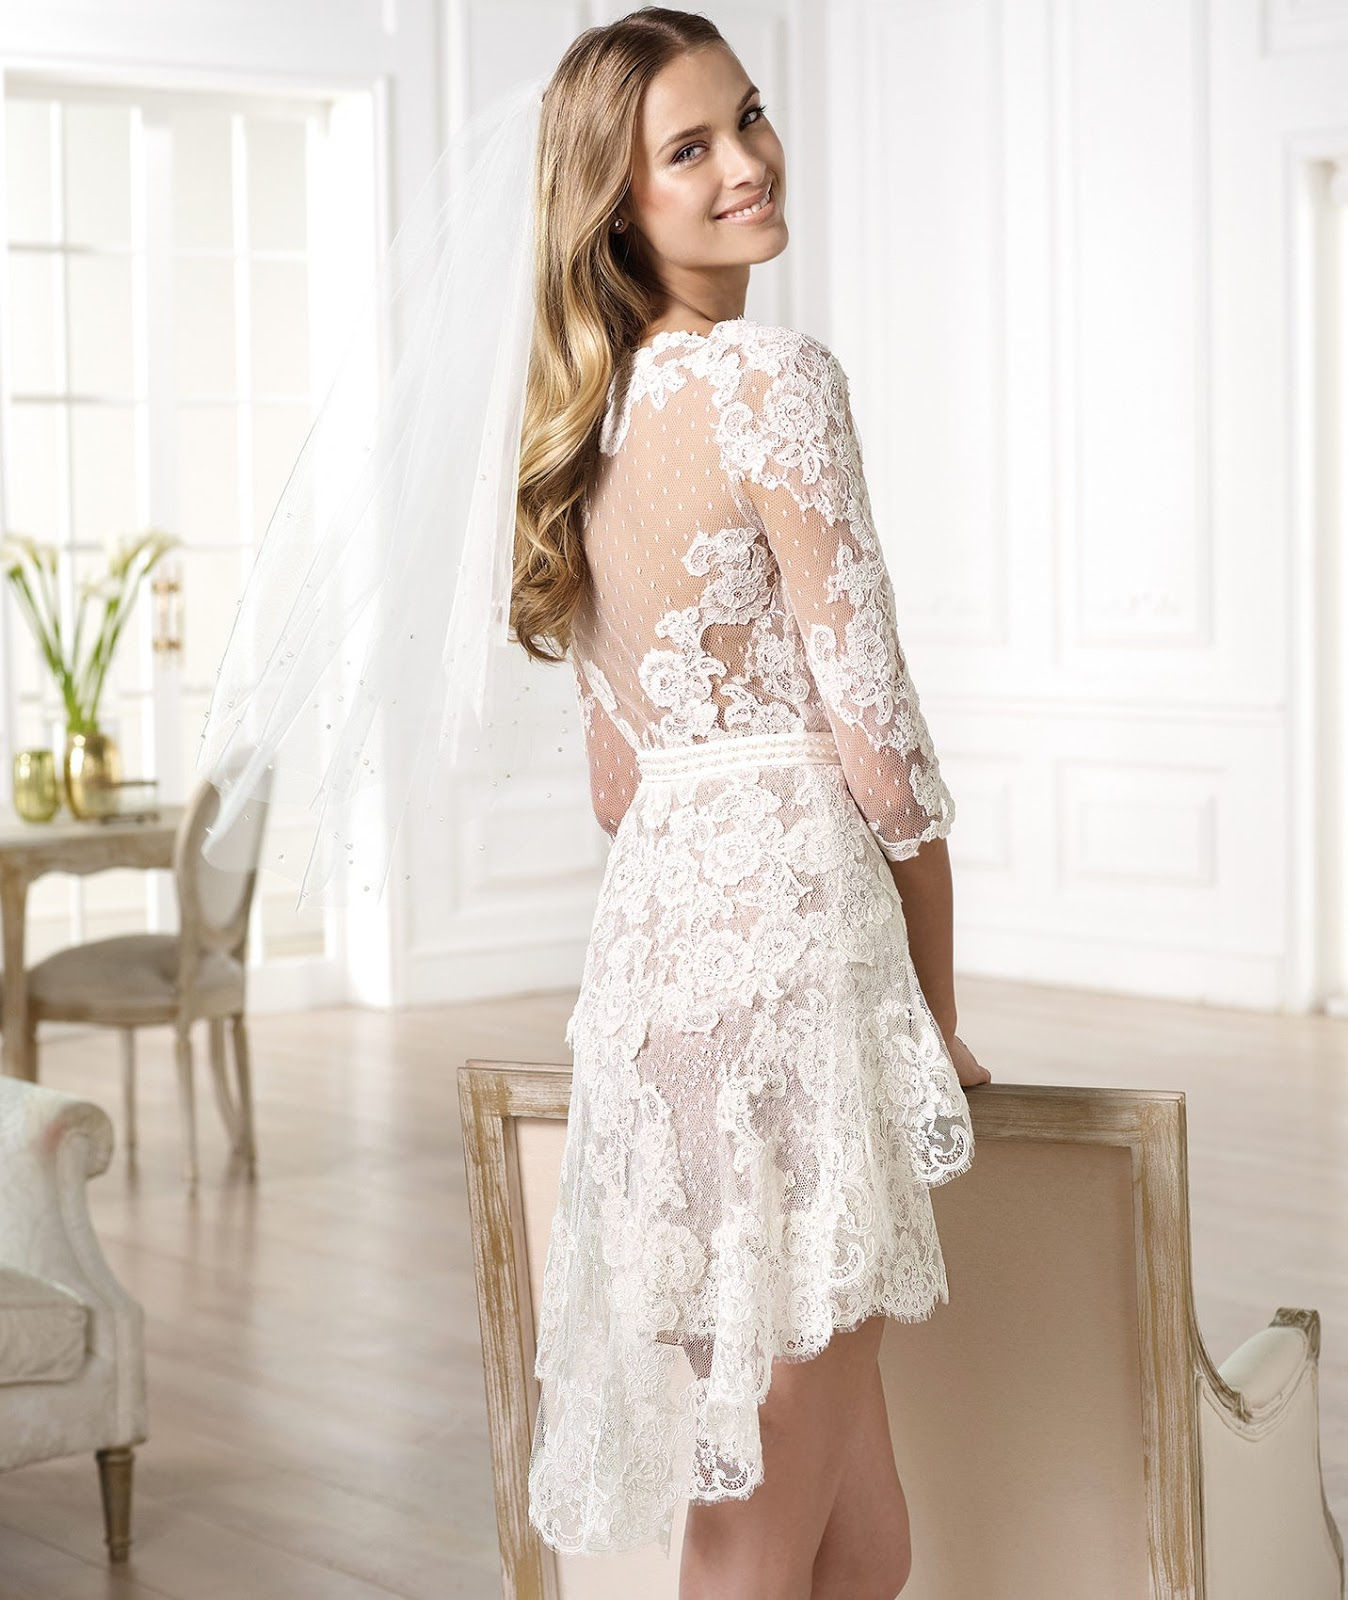 Get feminine look with short lace wedding dresses for No lace wedding dress